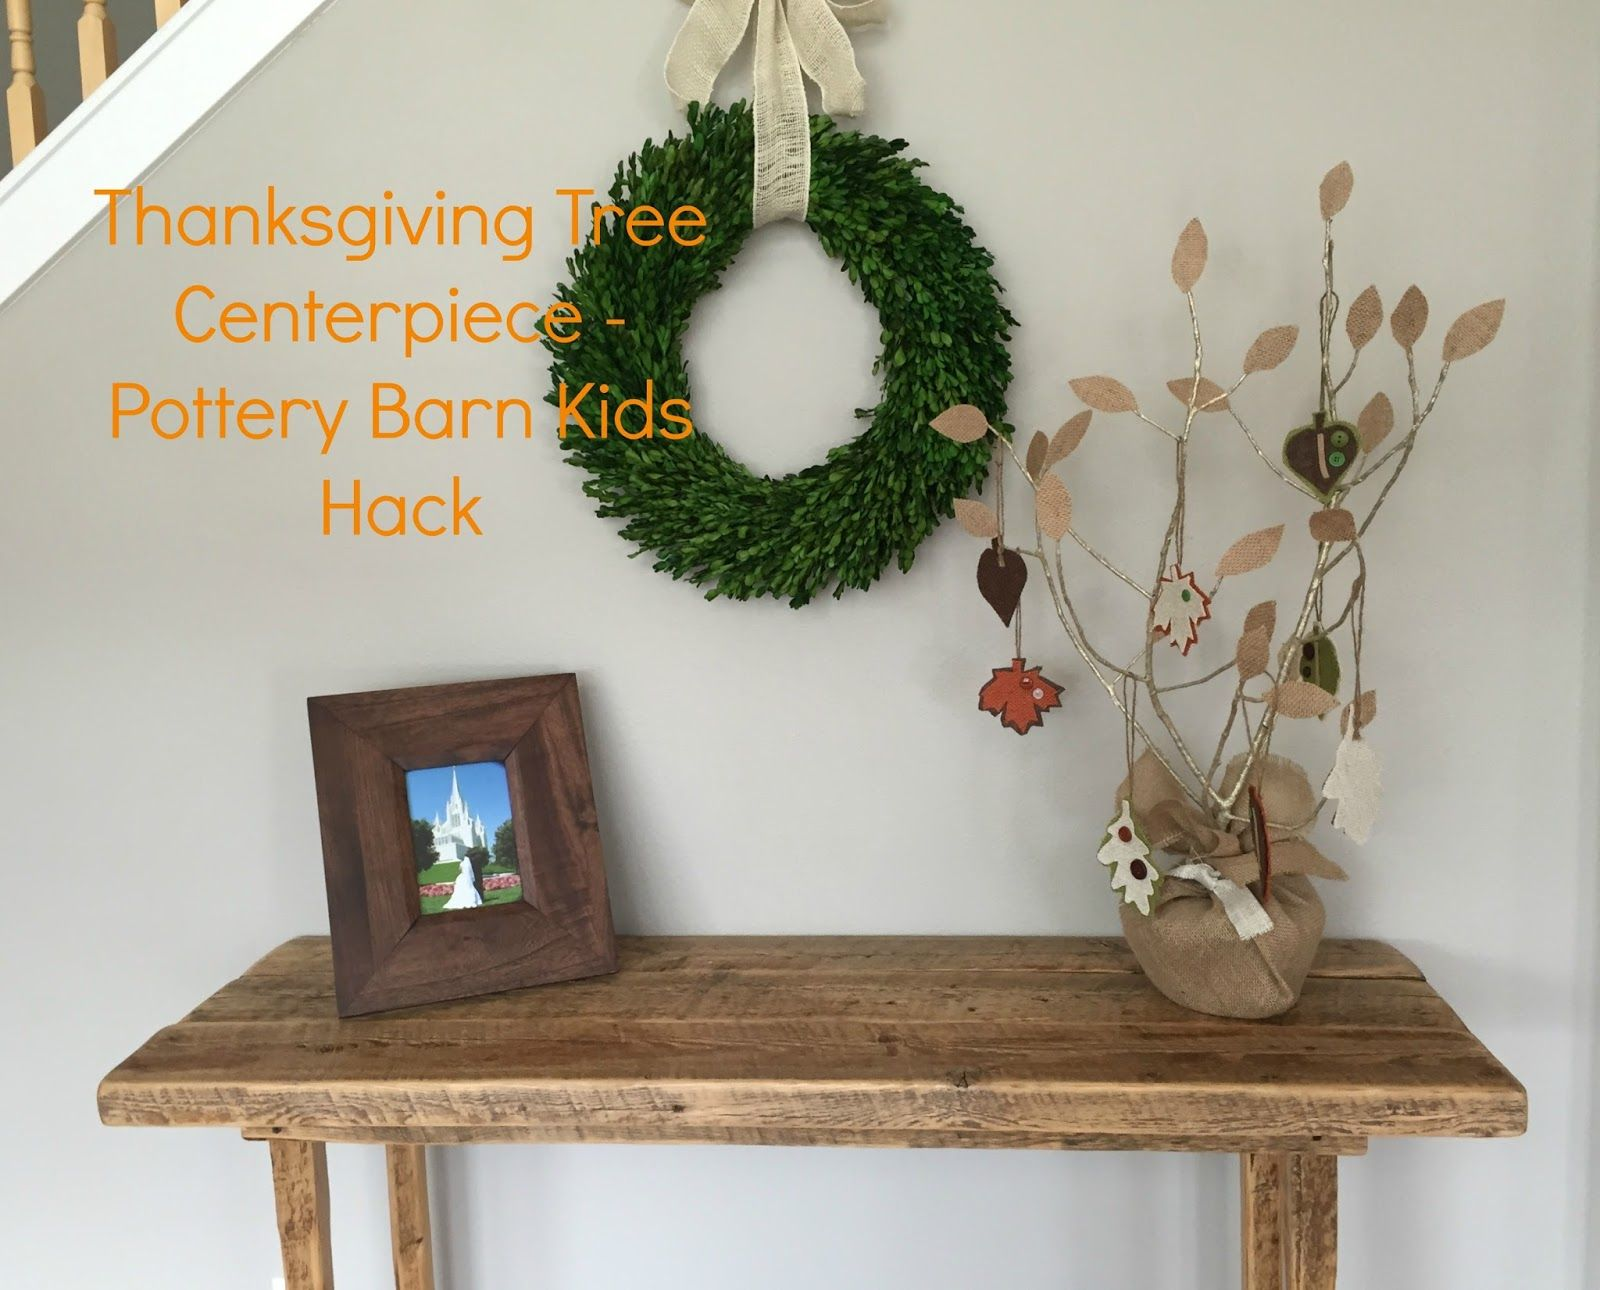 I made this Girl and her Kitchen: Thanksgiving Tree Centerpiece - Pottery Barn Kids Hack for under $10